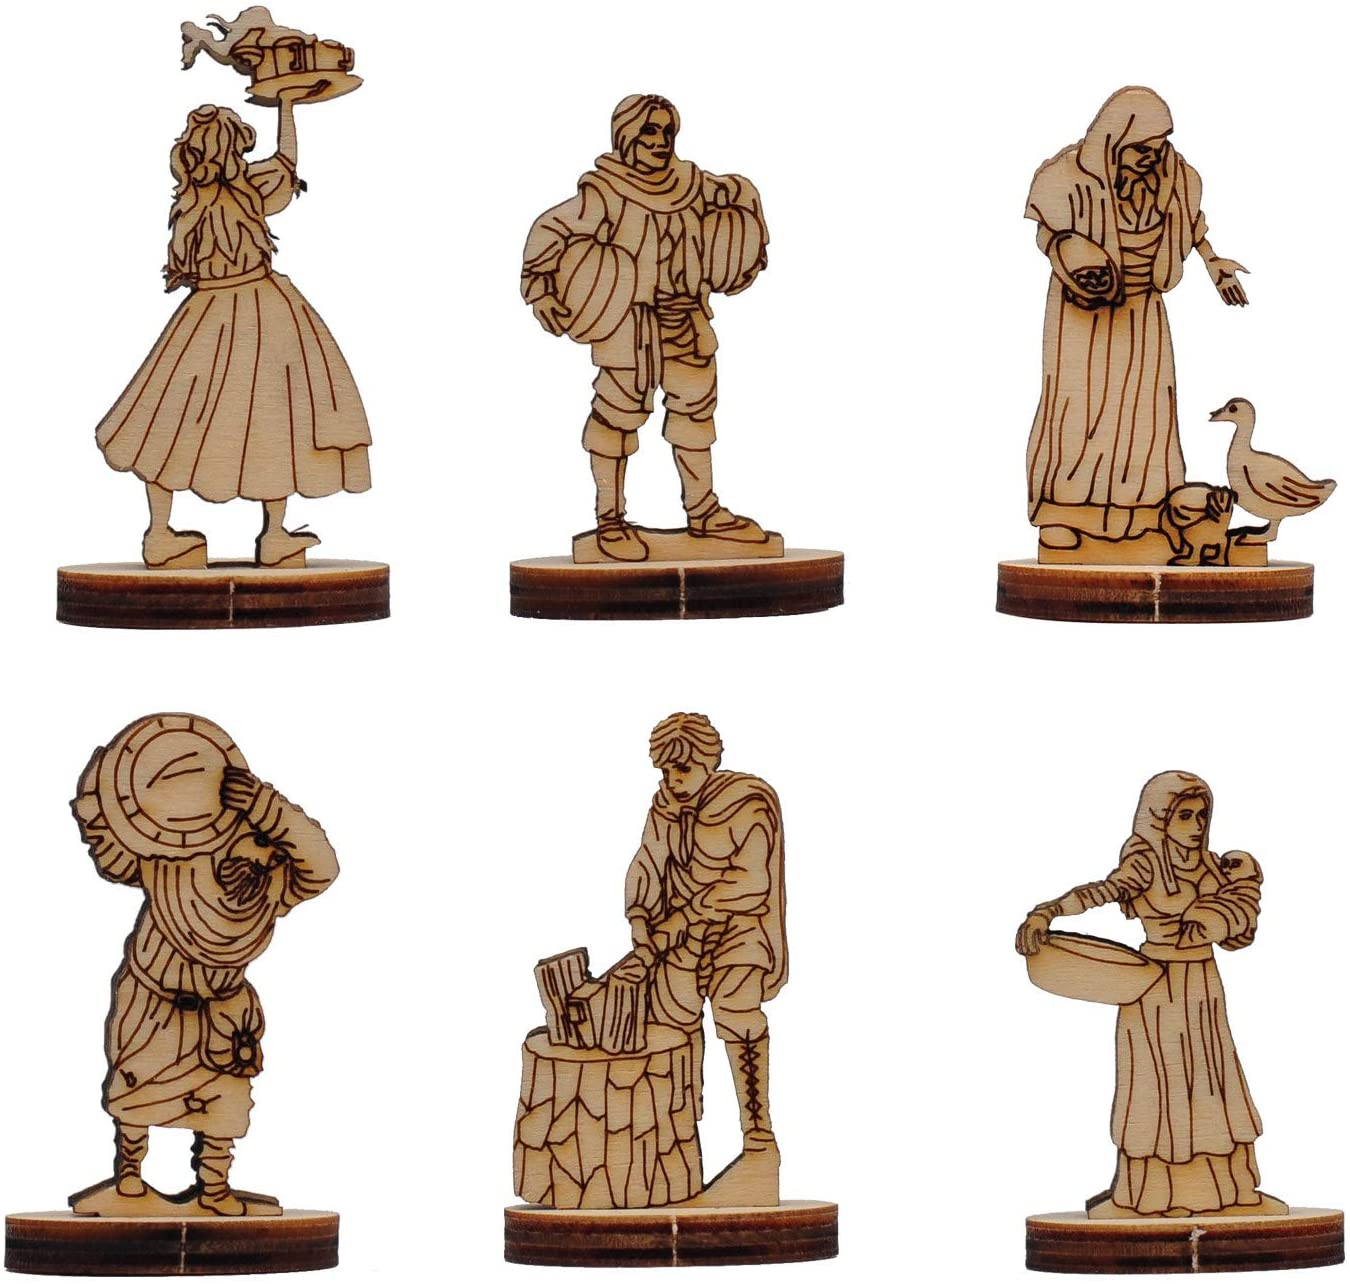 RPG Miniatures Medieval Townsfolk Figures Collection Set of 6 Wood Laser Cut 28mm Villagers NPCs for D&D, Pathfinder & other Fantasy Tabletop Role Playing Games